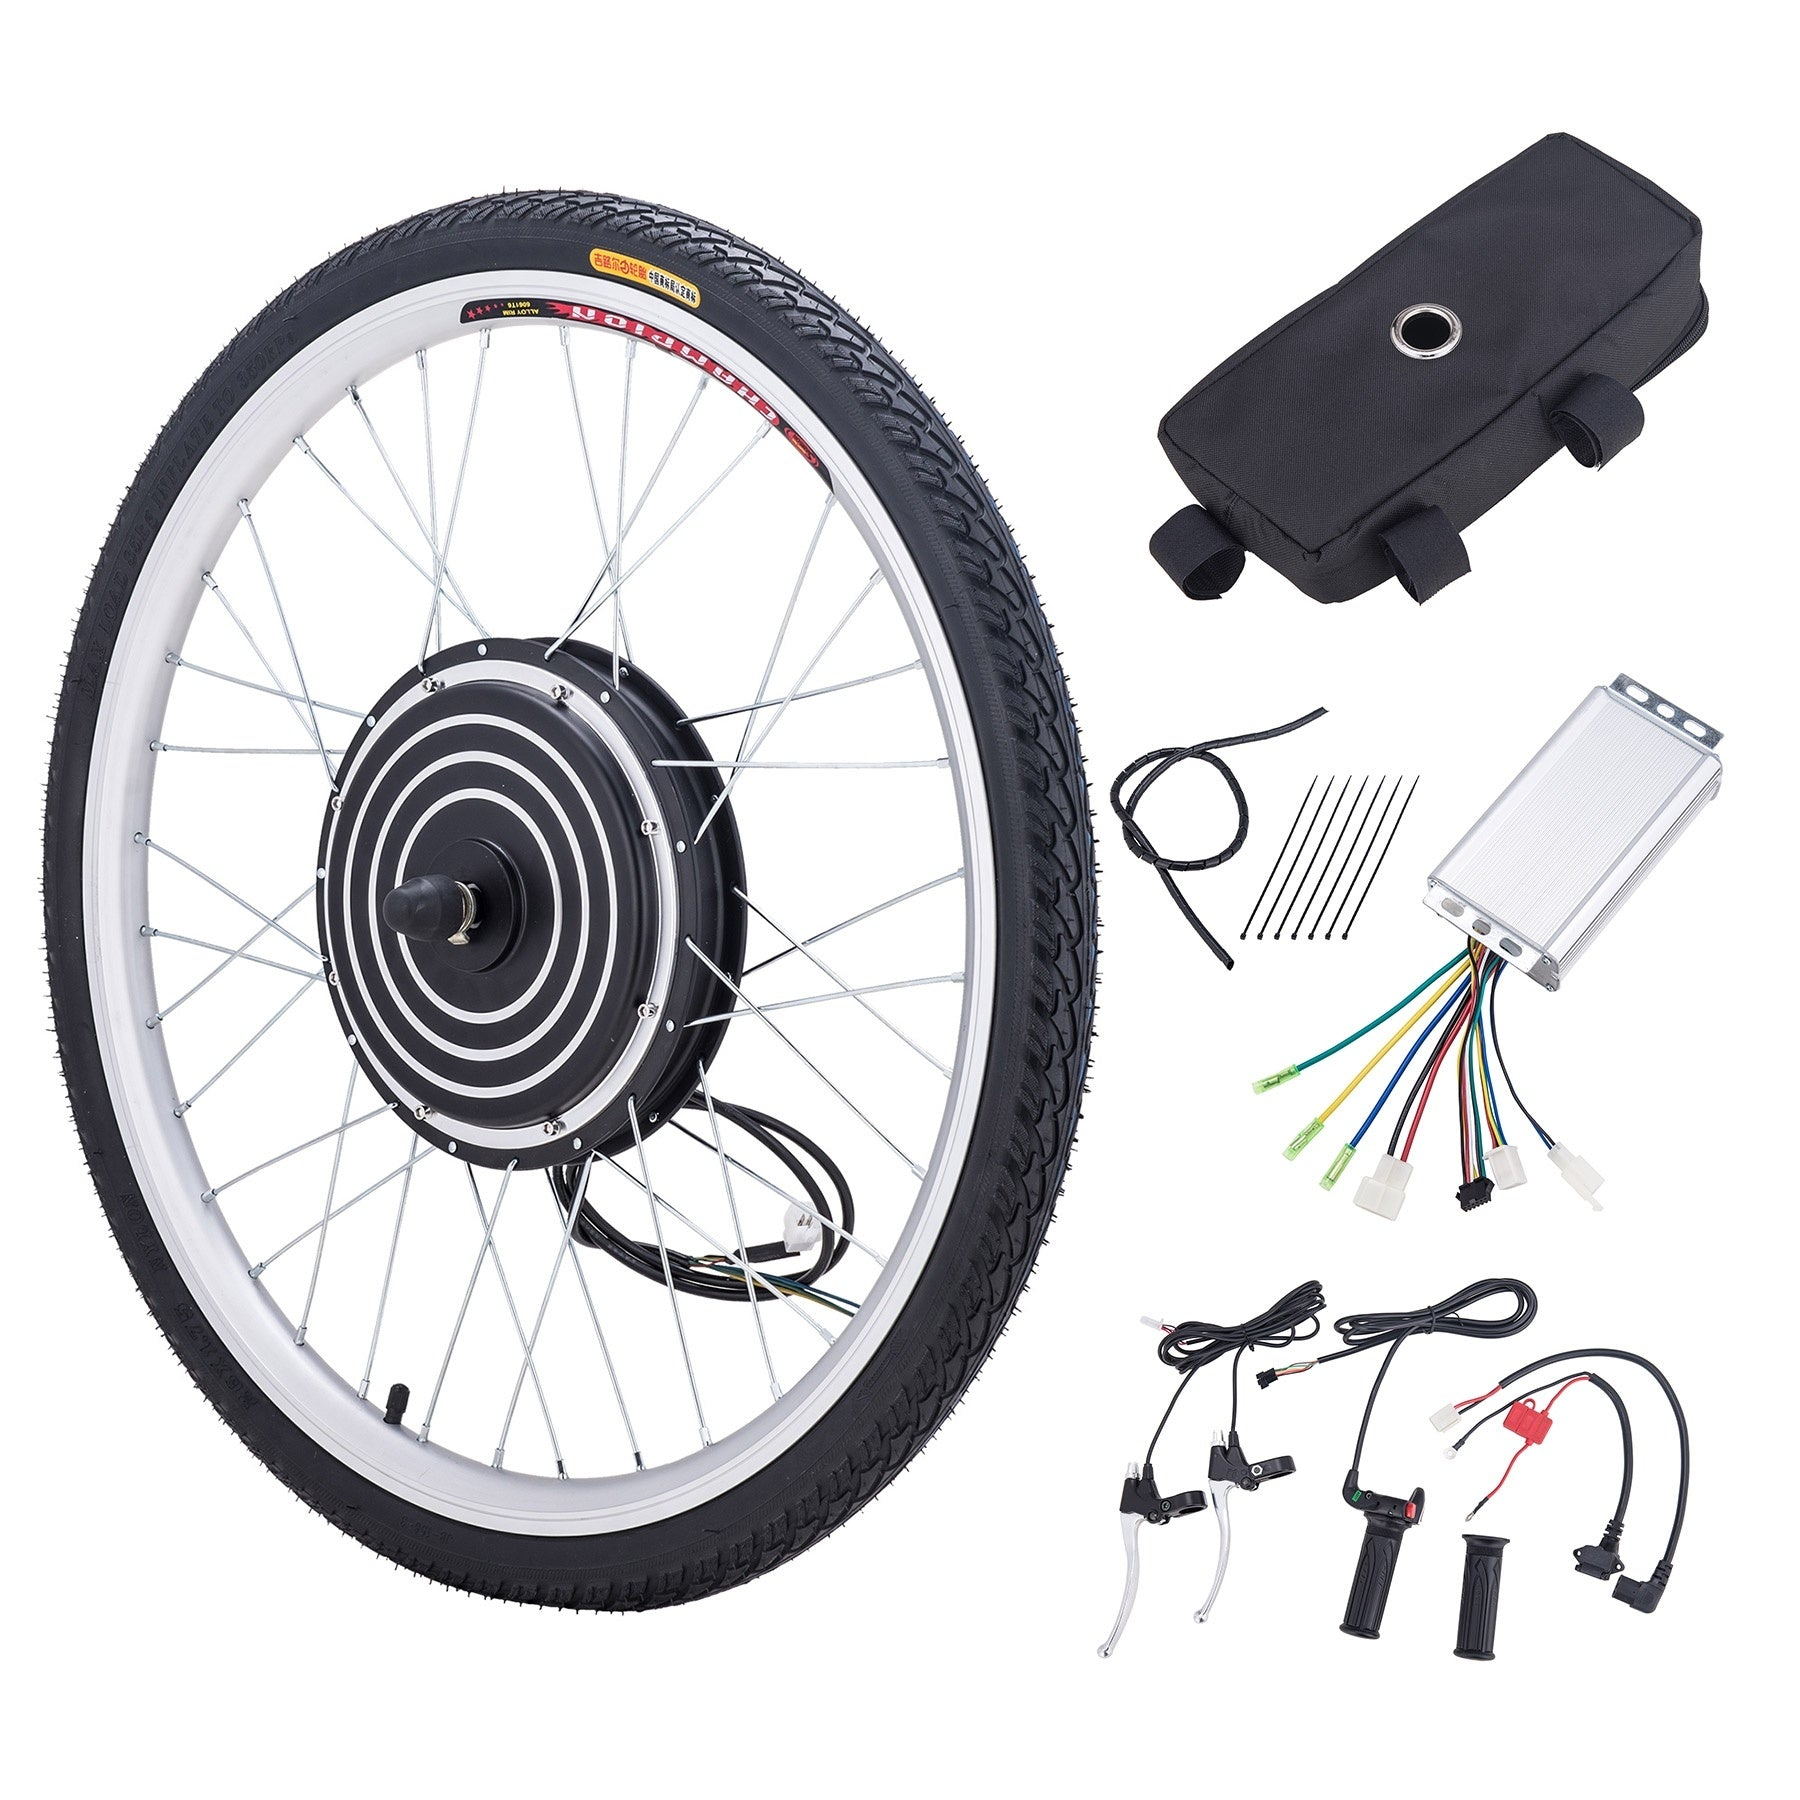 P152 (FREE SHIPPING USA ) Electric Bicycle Motor Kit Front Wheel 36V